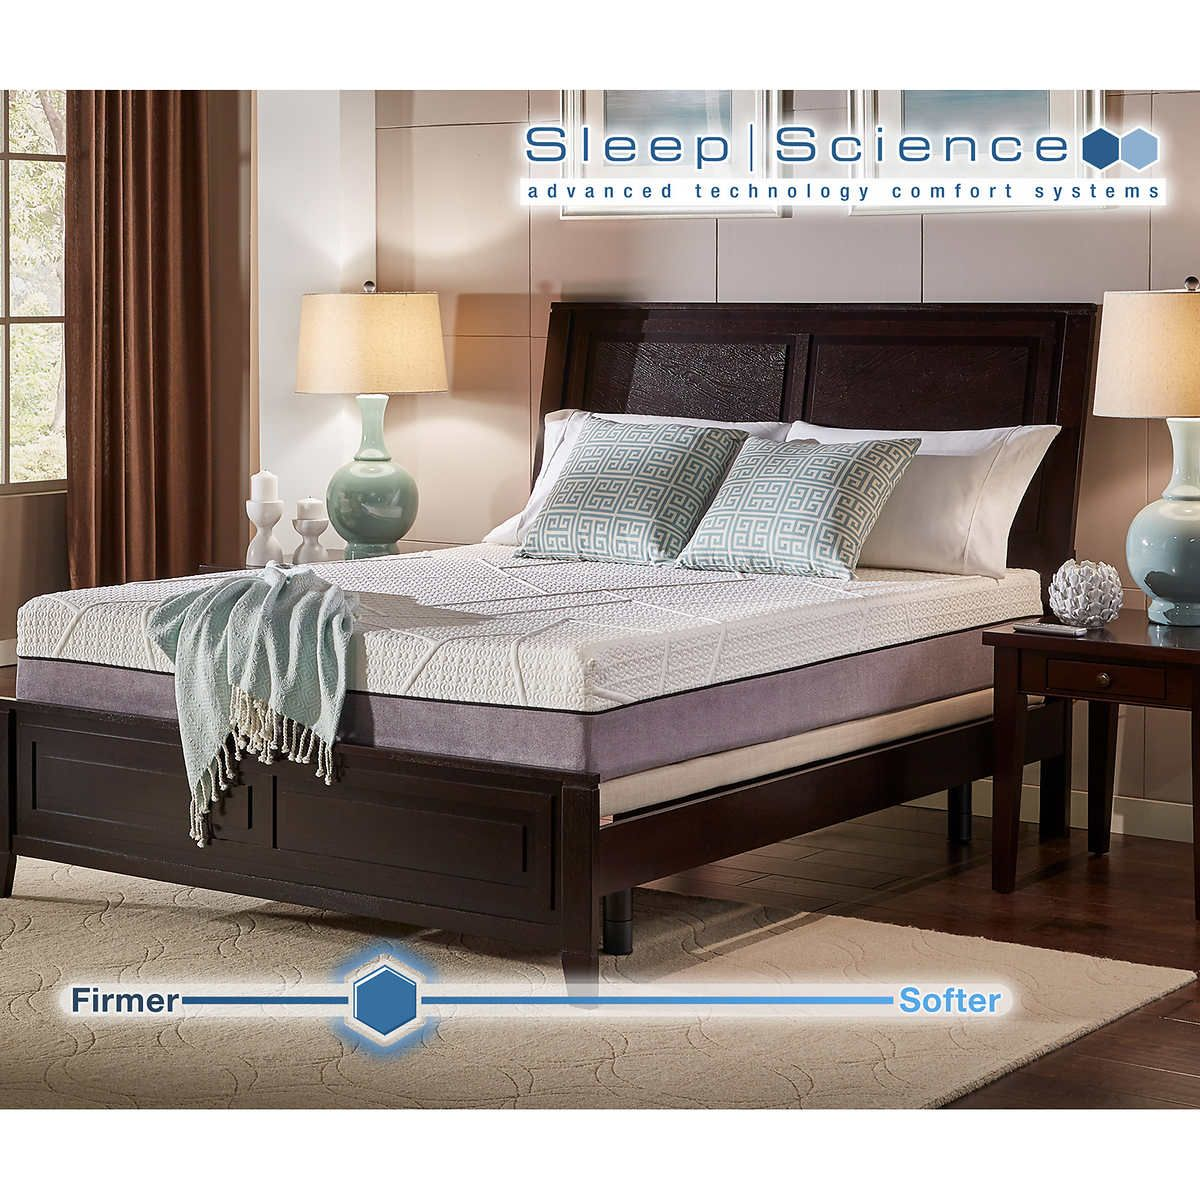 Pin by casahoma on BEDROOM FURNITURE Queen memory foam